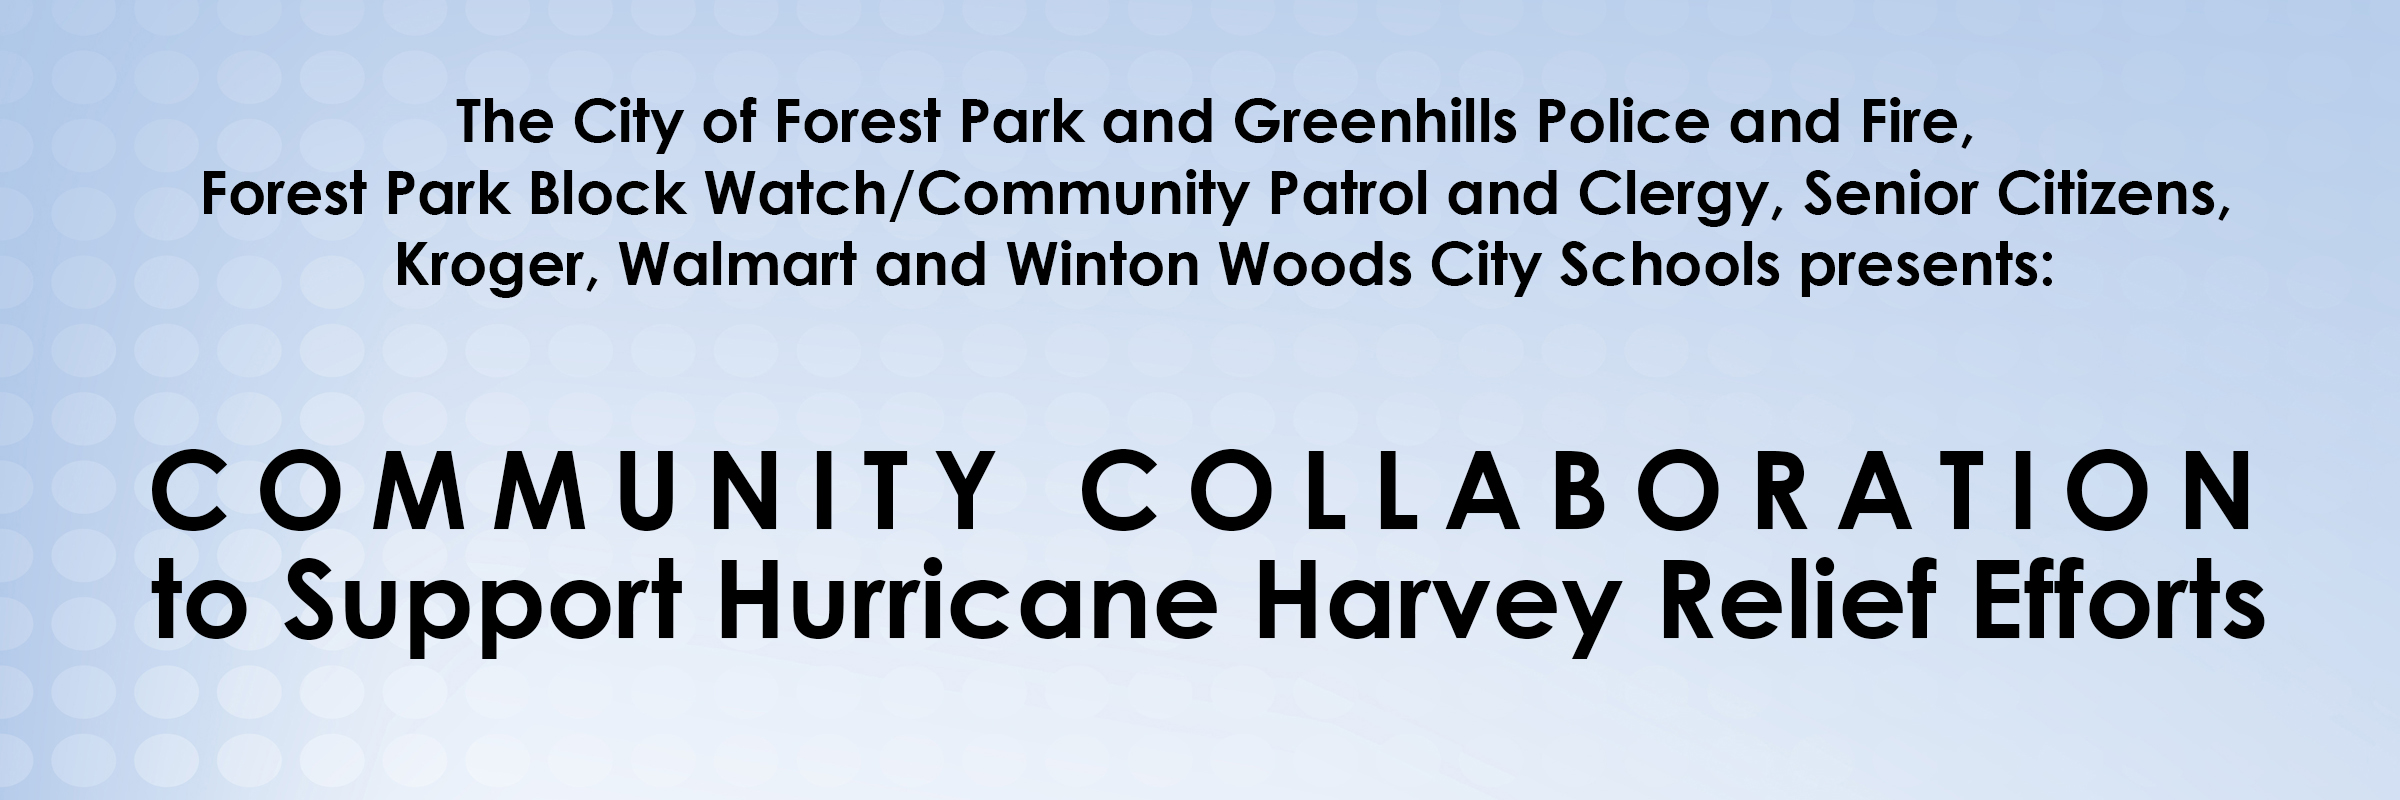 Community Collaboration to Support Hurricane Harvey Relief Efforts